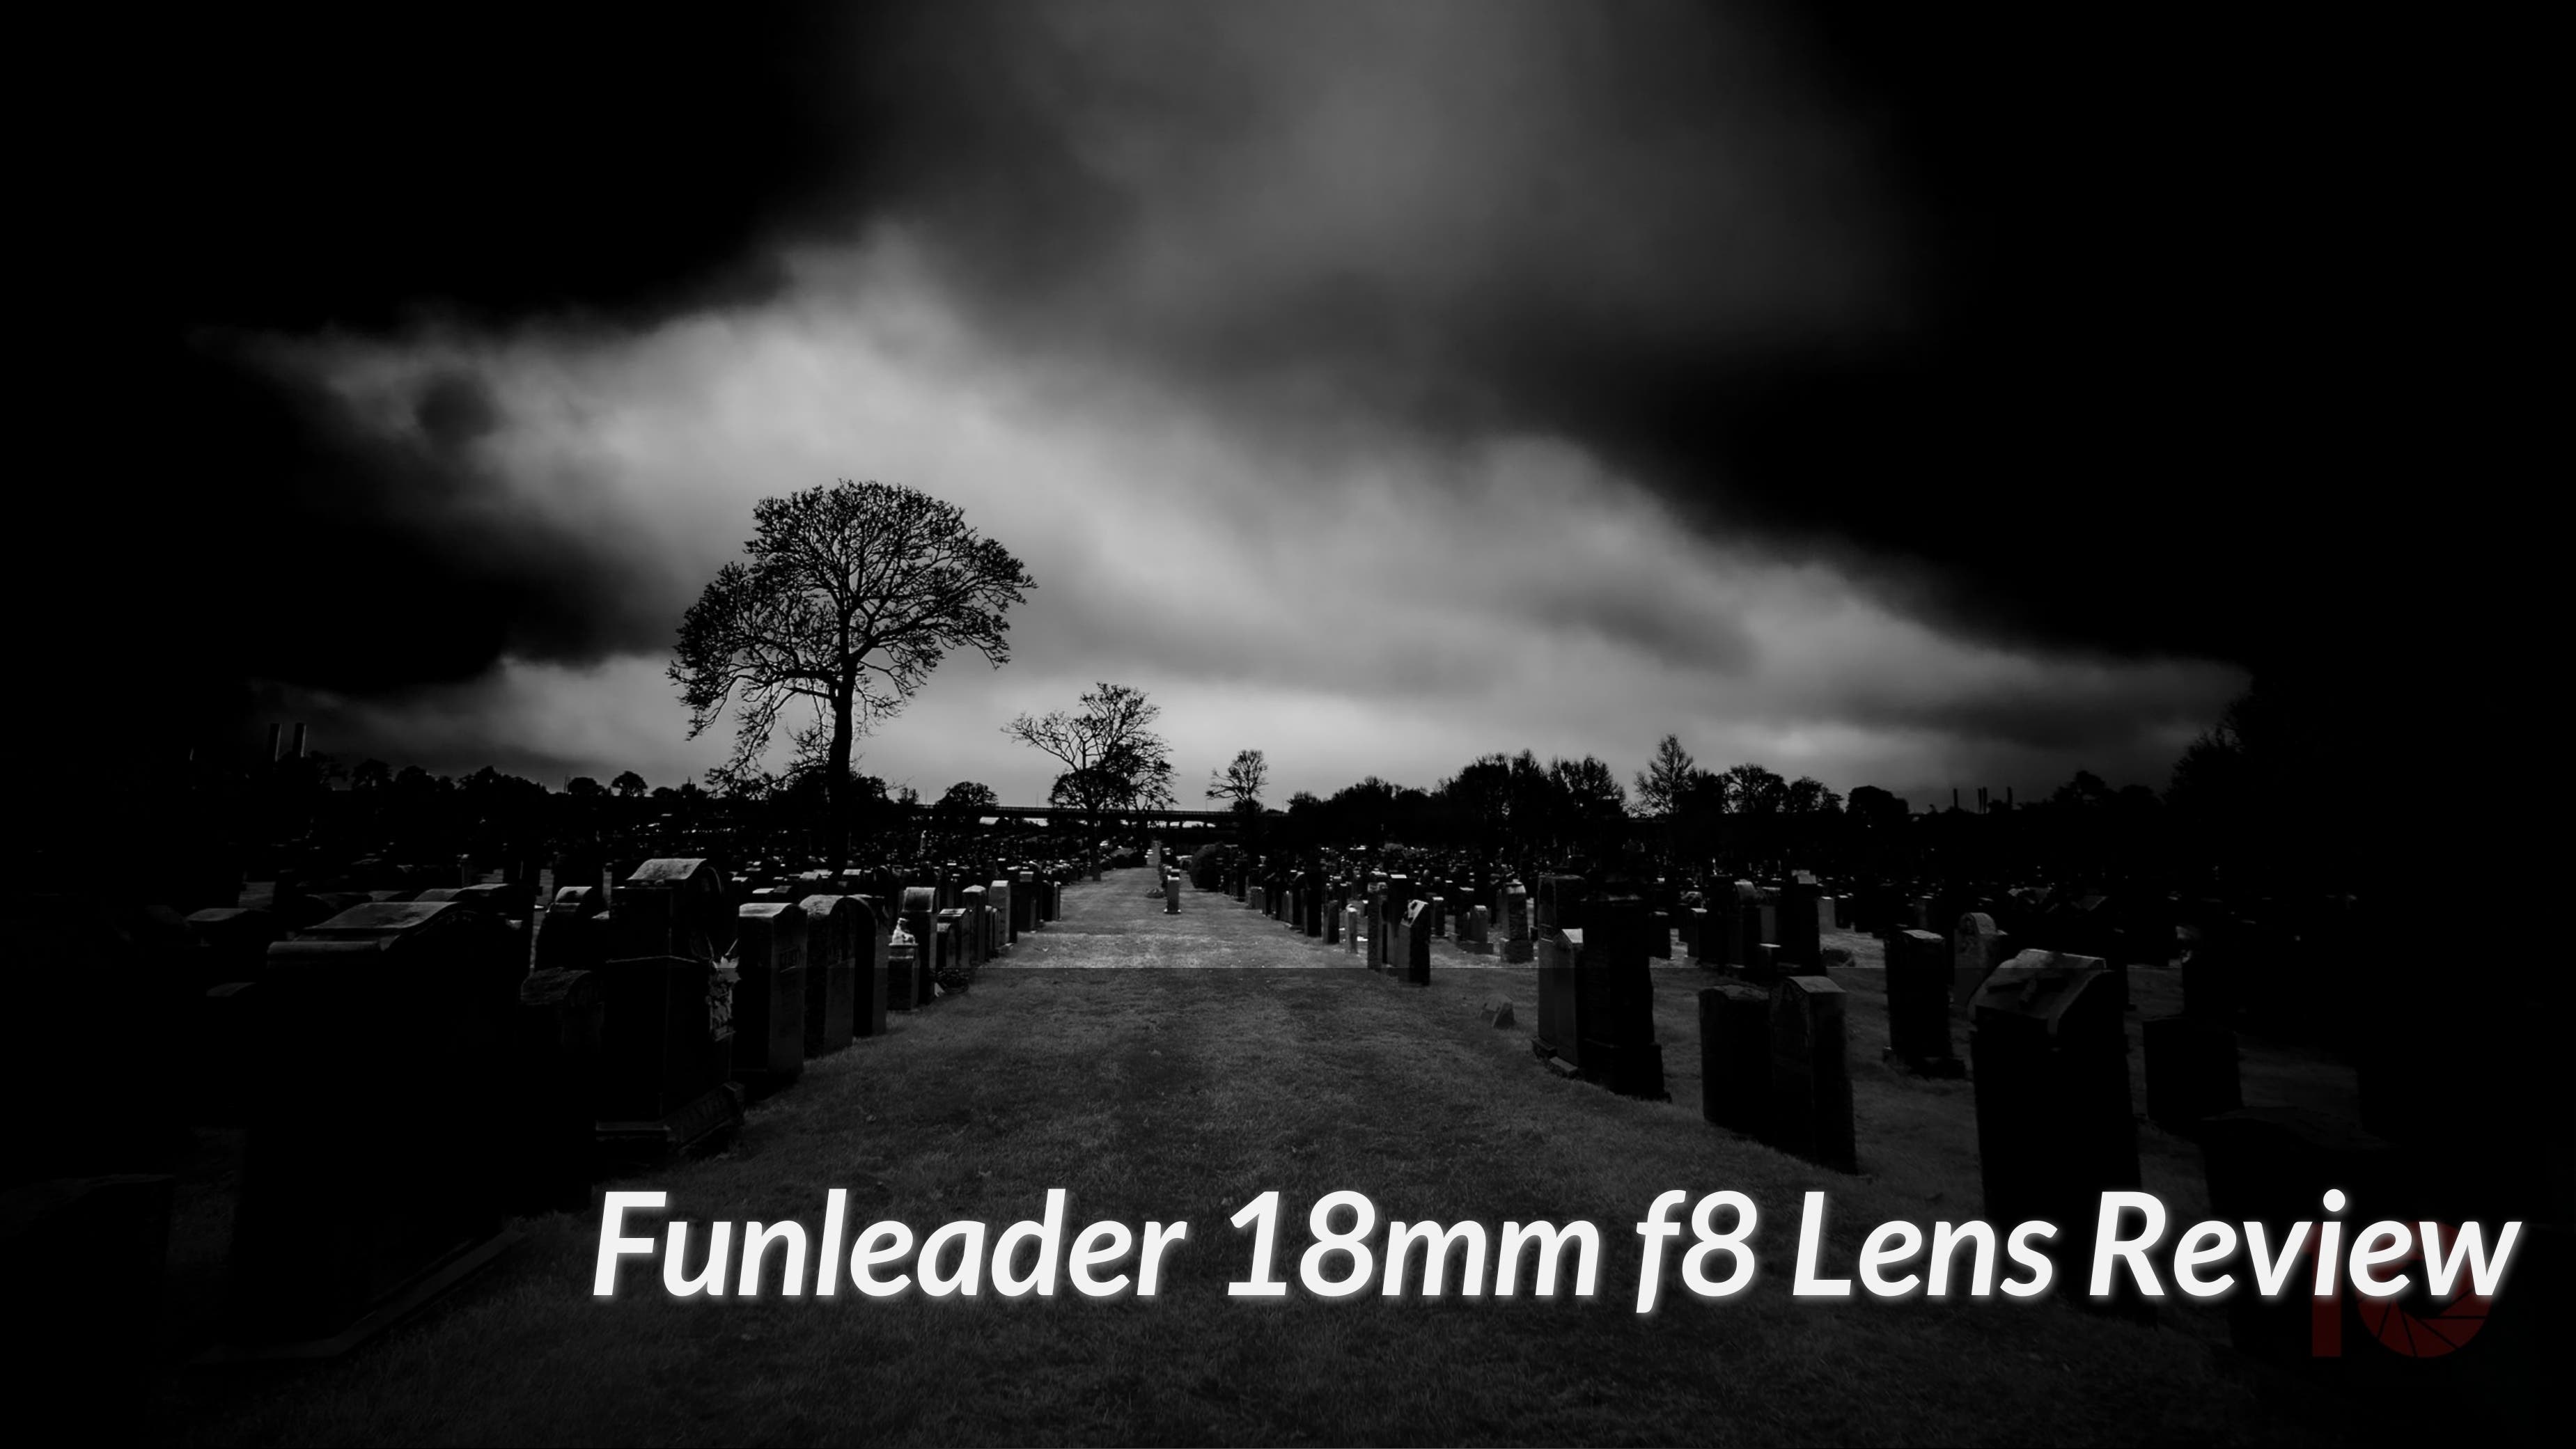 The Funleader 18mm f8 is for Those Who Want Character